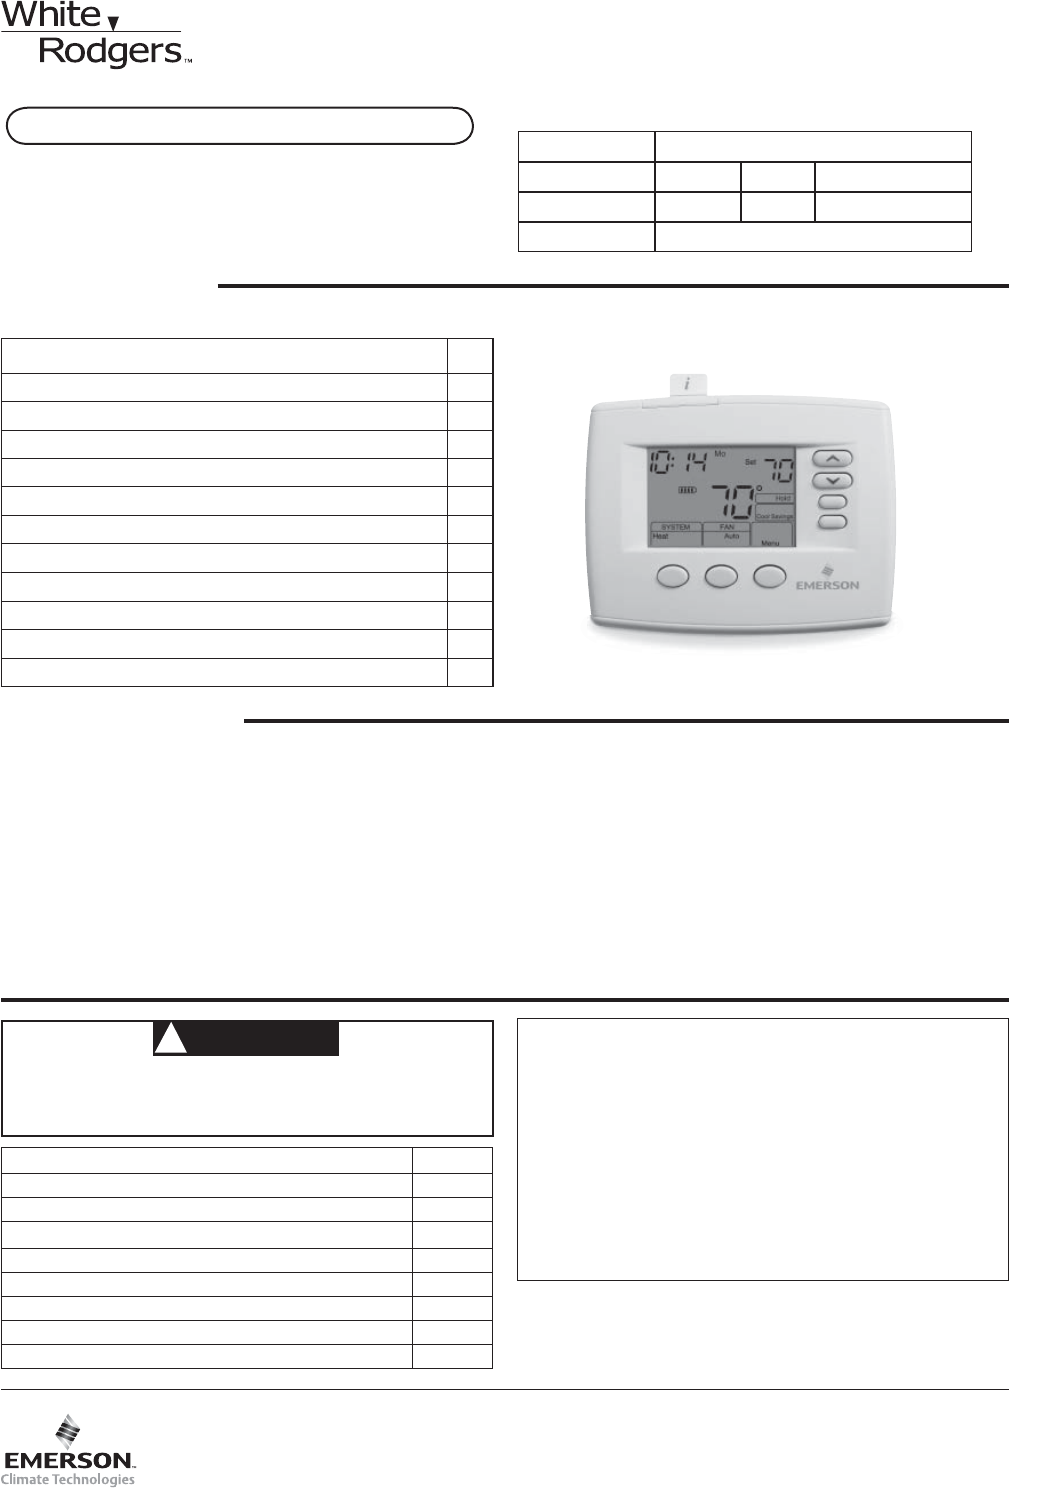 white rodgers thermostat 1f85 0471 user guide manualsonline com rh kitchen manualsonline com White Rodgers Logo White Rodgers Thermostat Manuals 1F78